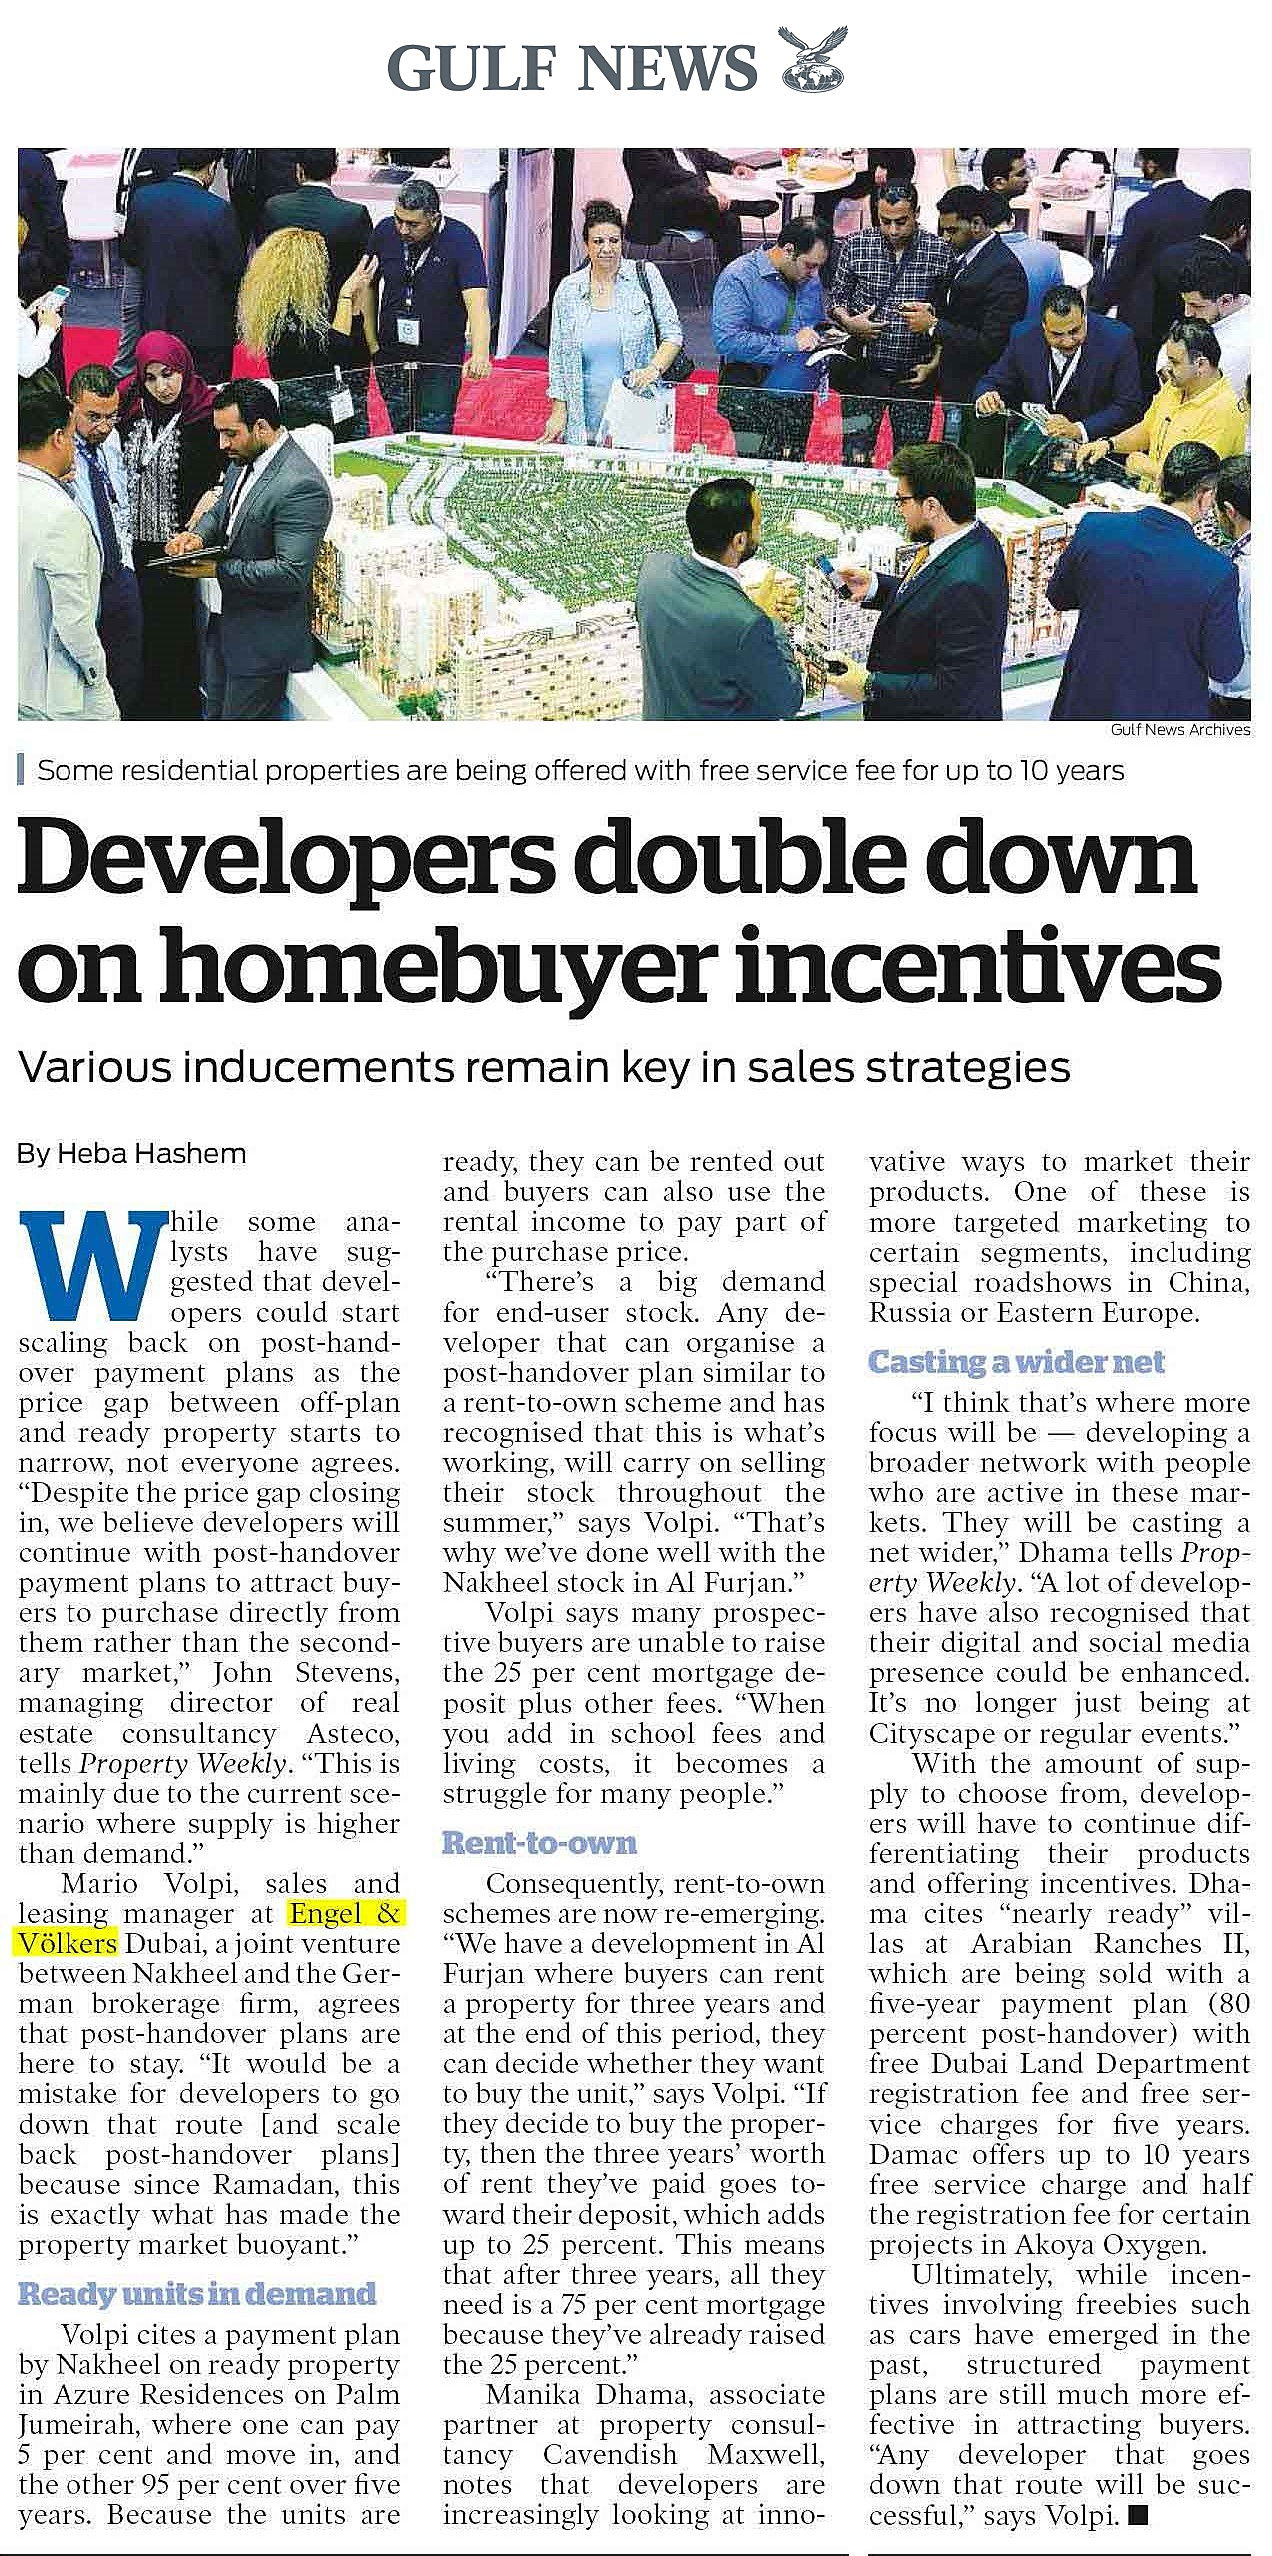 Dubai, United Arab Emirates - PW - Developers double down on homebuyer incentives - Aug 18 - Copy.jpg